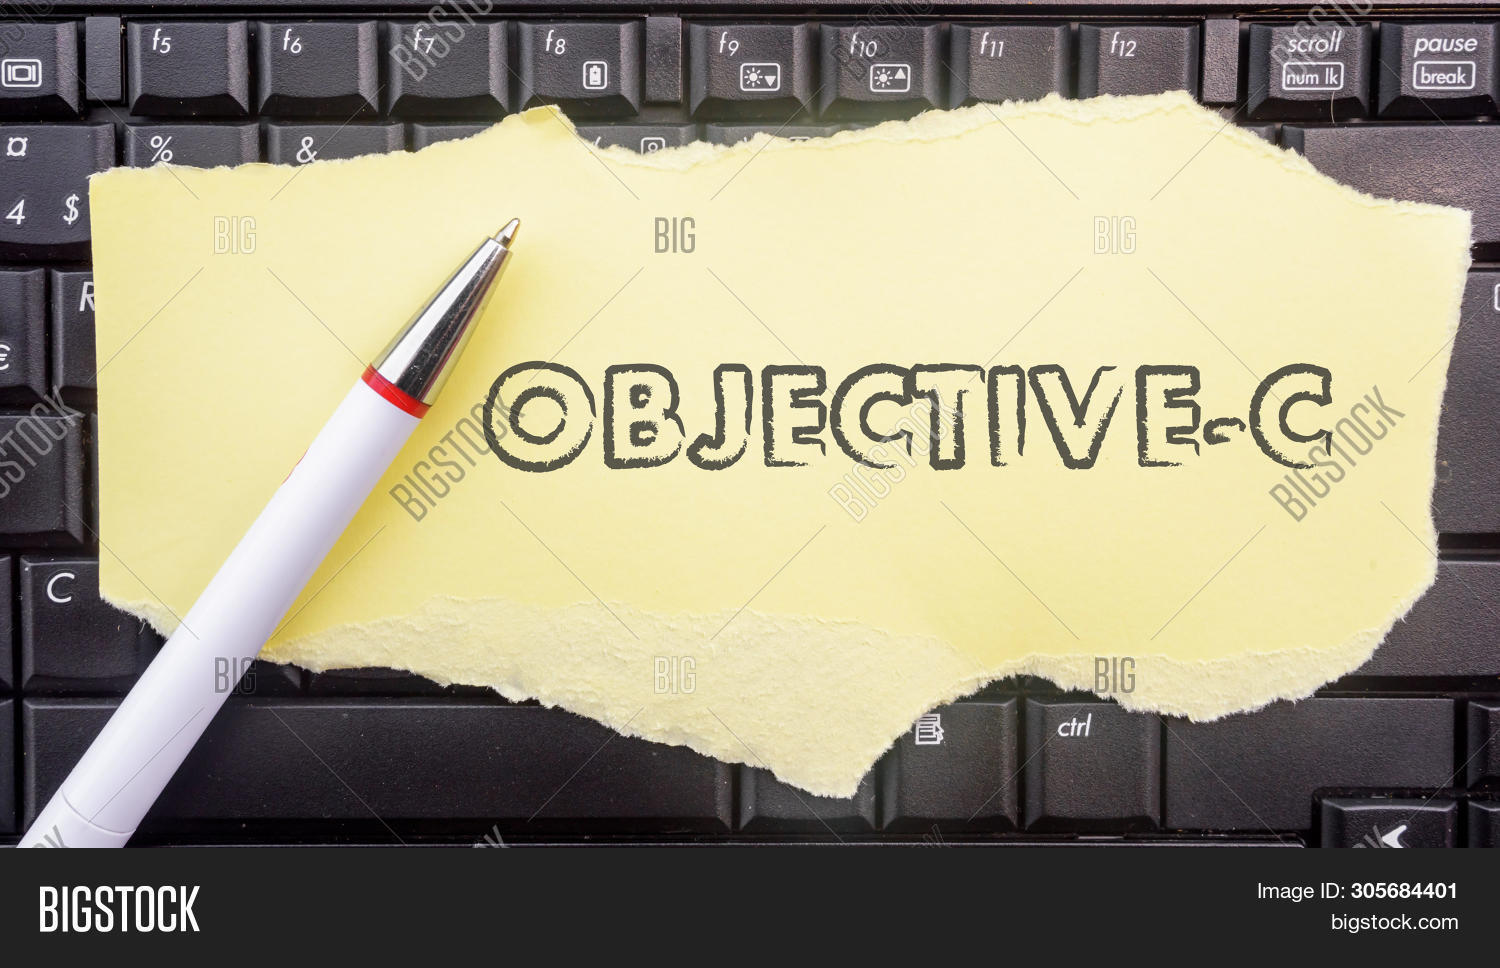 Objective-c Programming Language. Paper Width Word Objective-c And Pencil On Laptop Keyboard